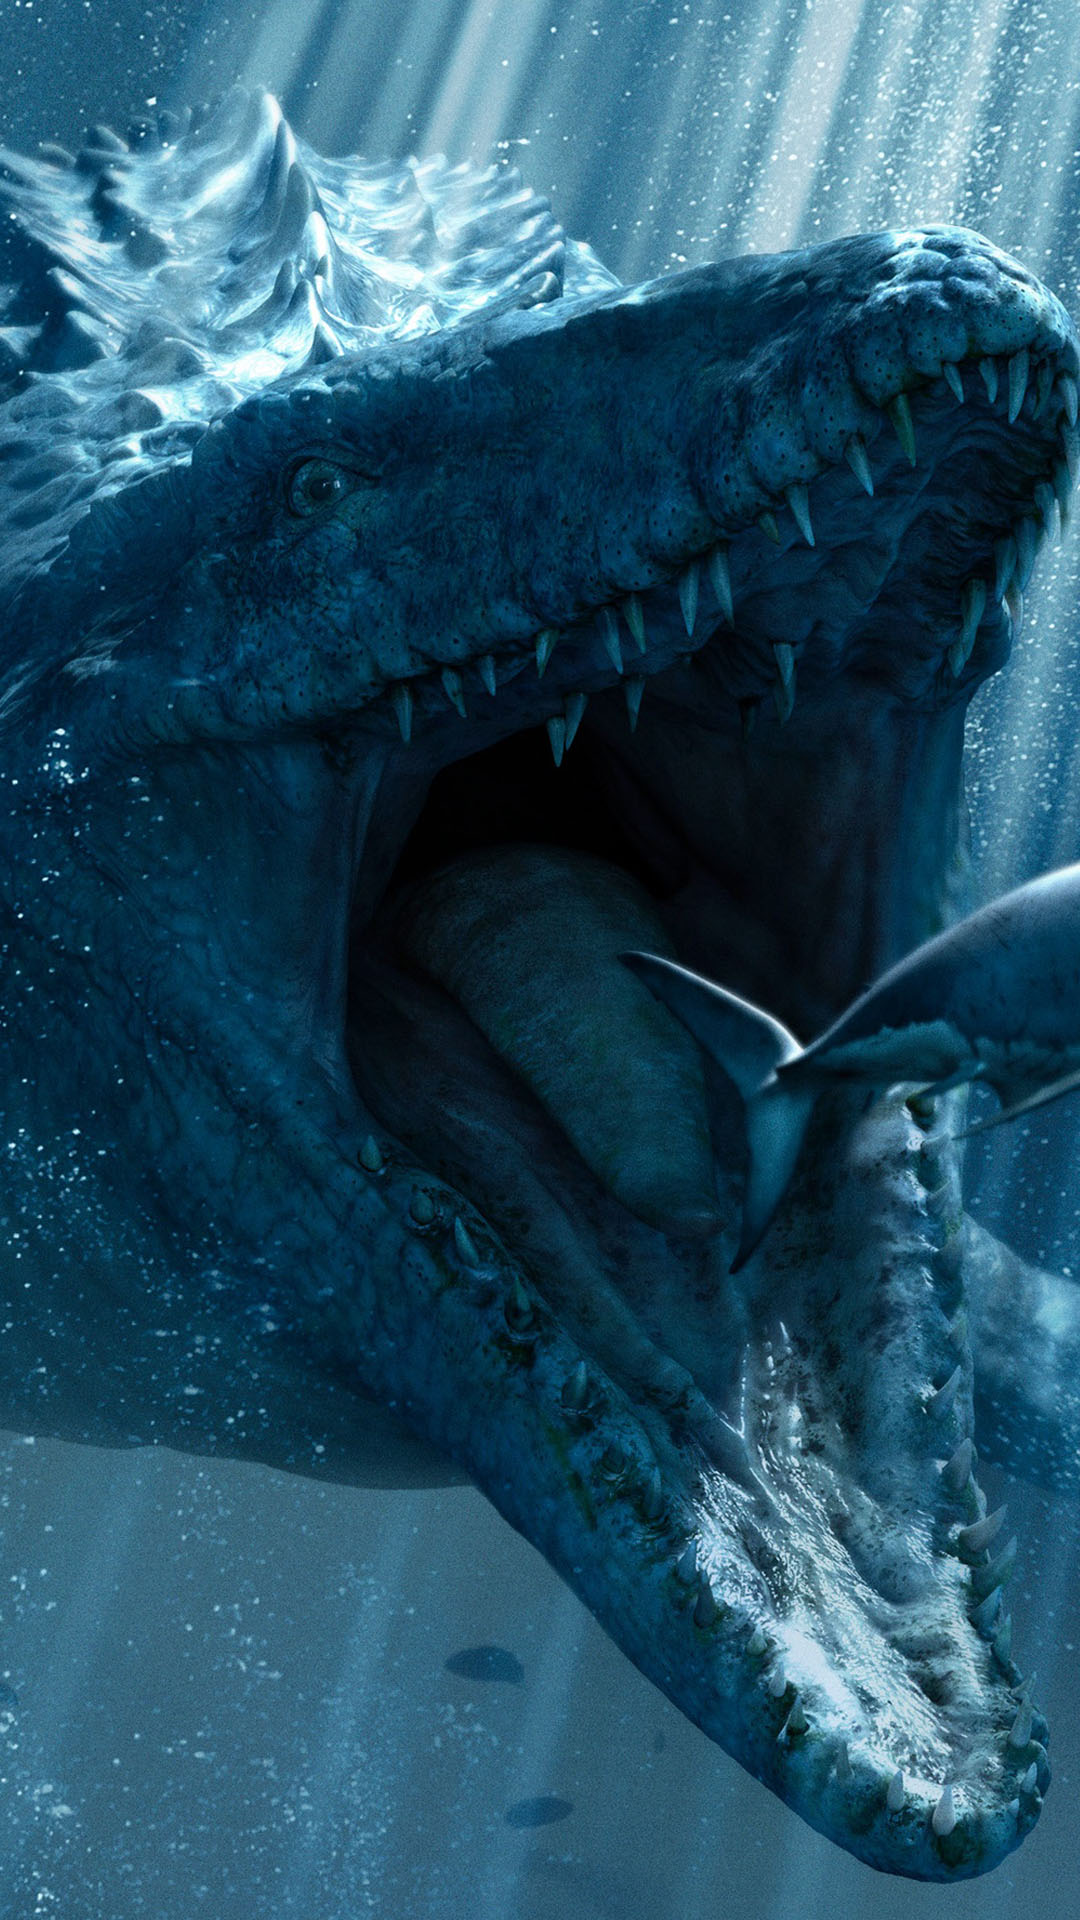 Free Download Jurassic World Underwater Iphone 6 6 Plus And